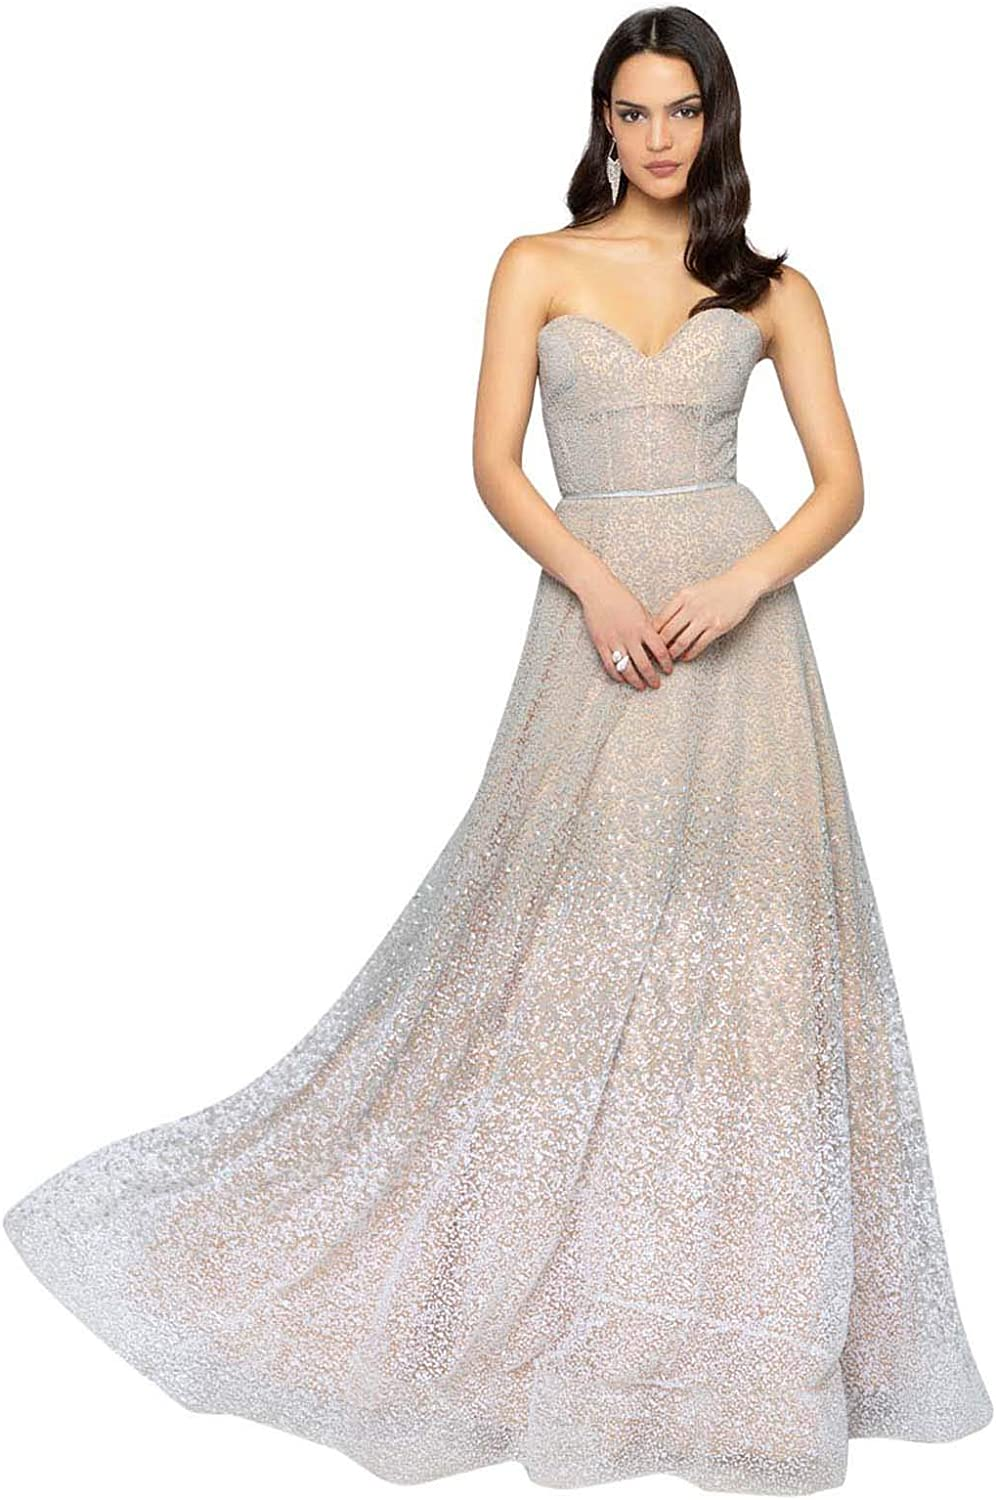 Terani Couture  1911P8482 Strapless Beaded ALine Gown